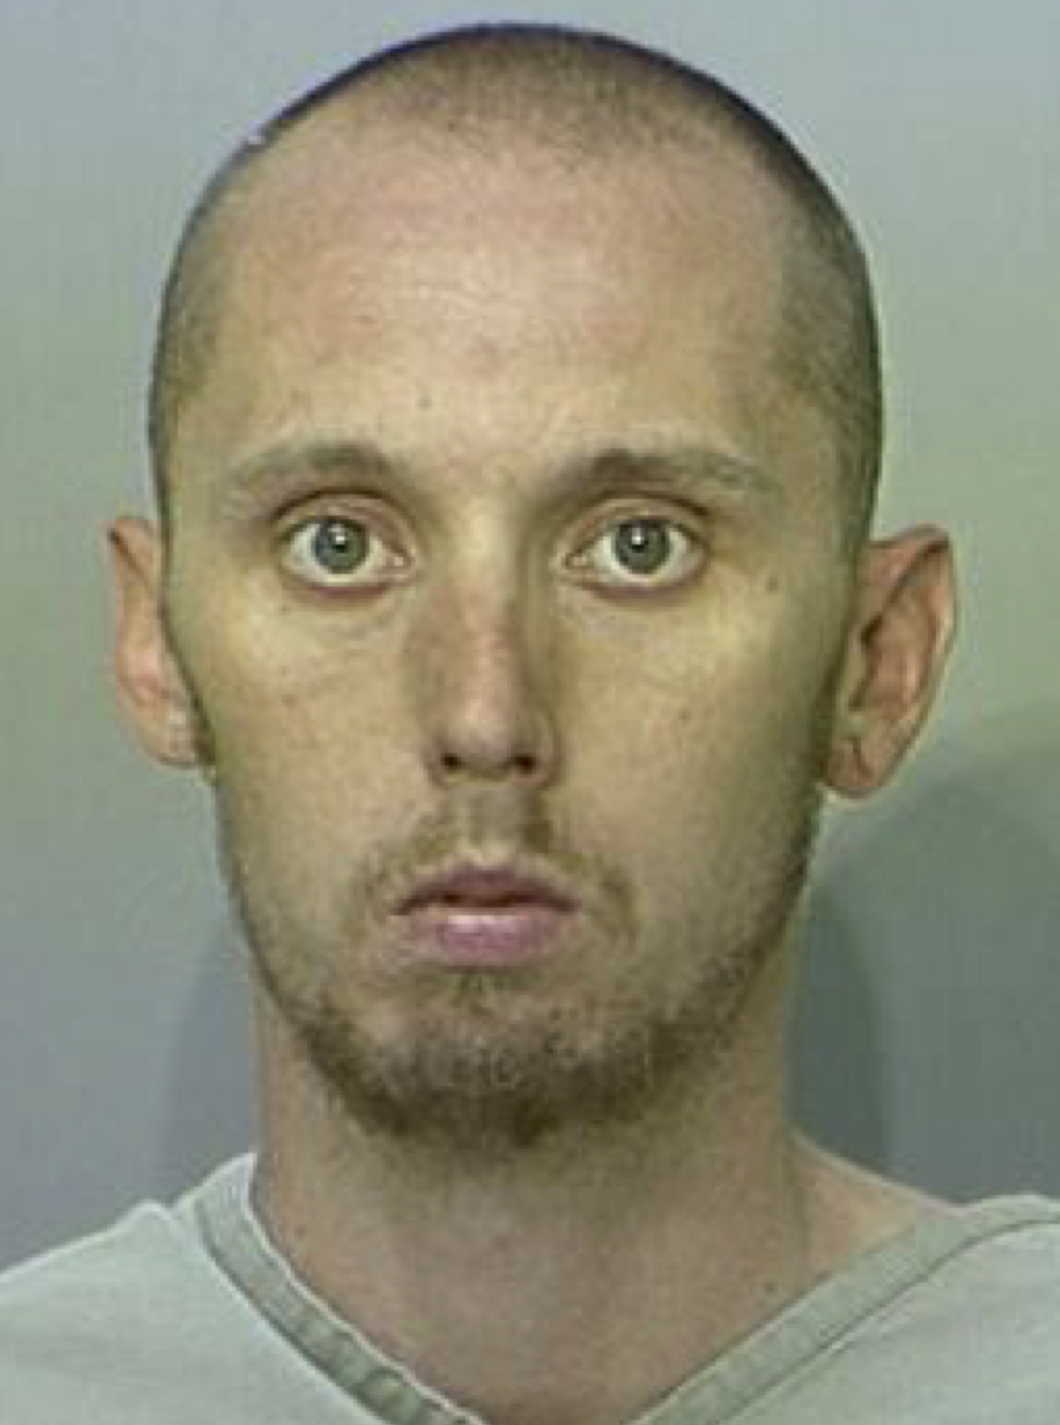 Fugitive Ohio shoplifter is fanatic for 'Downton' DVD collections